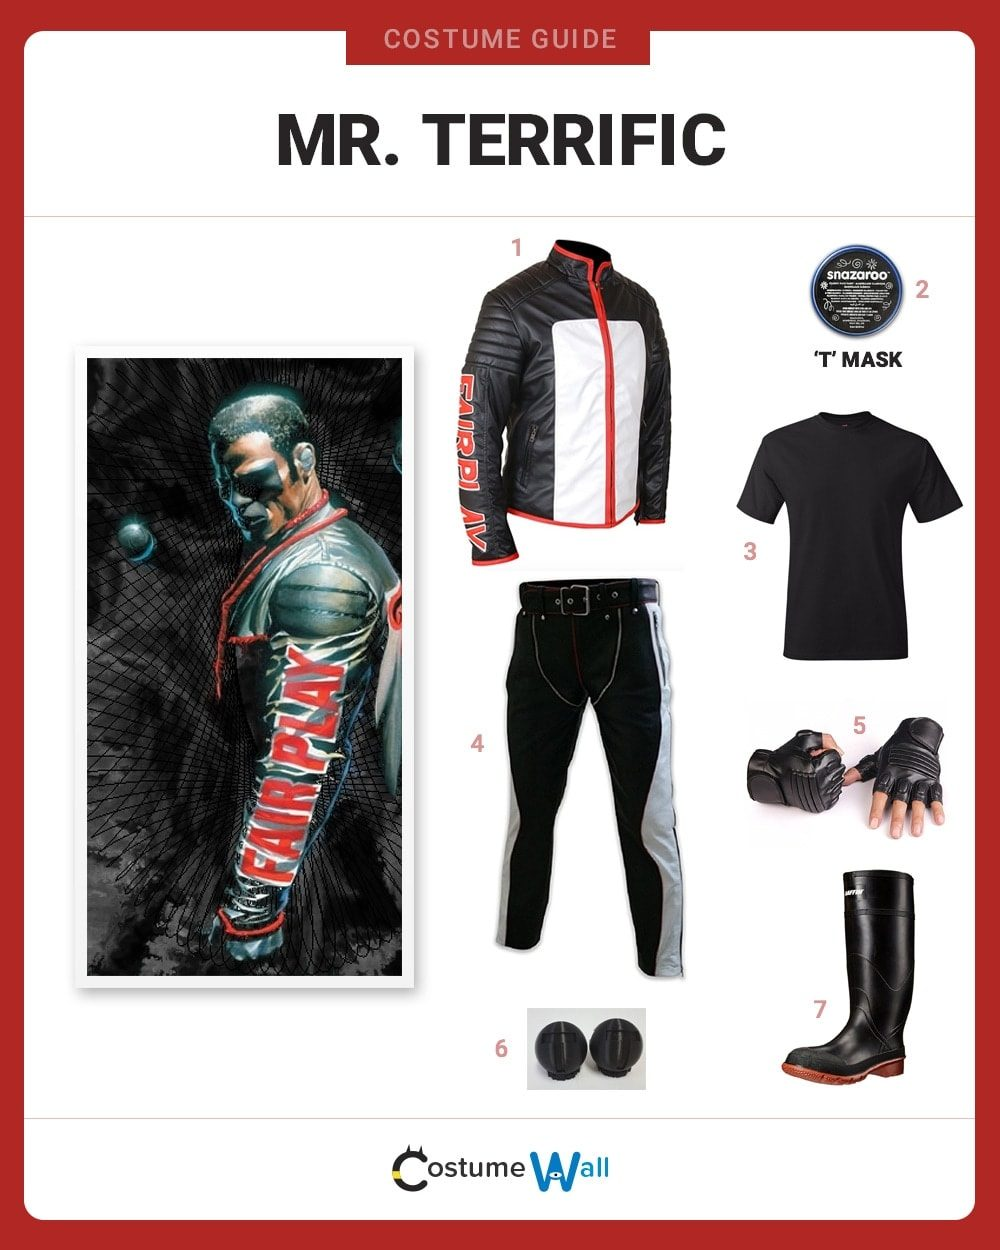 Mr. Terrific Costume Guide